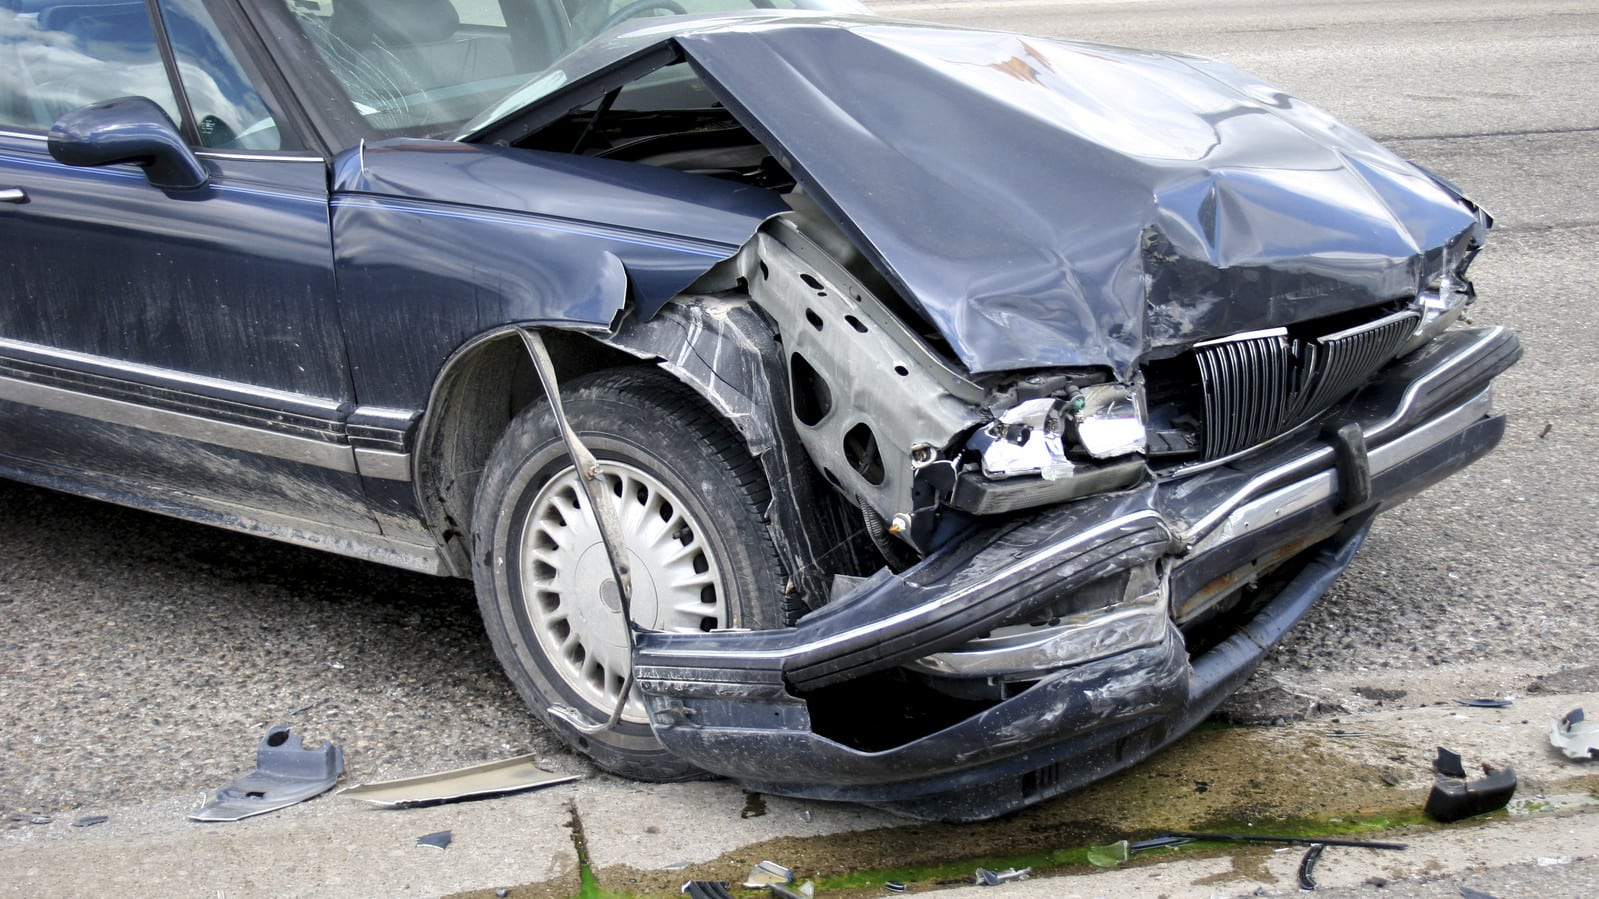 Front End Damage Car Accident Stock Photo